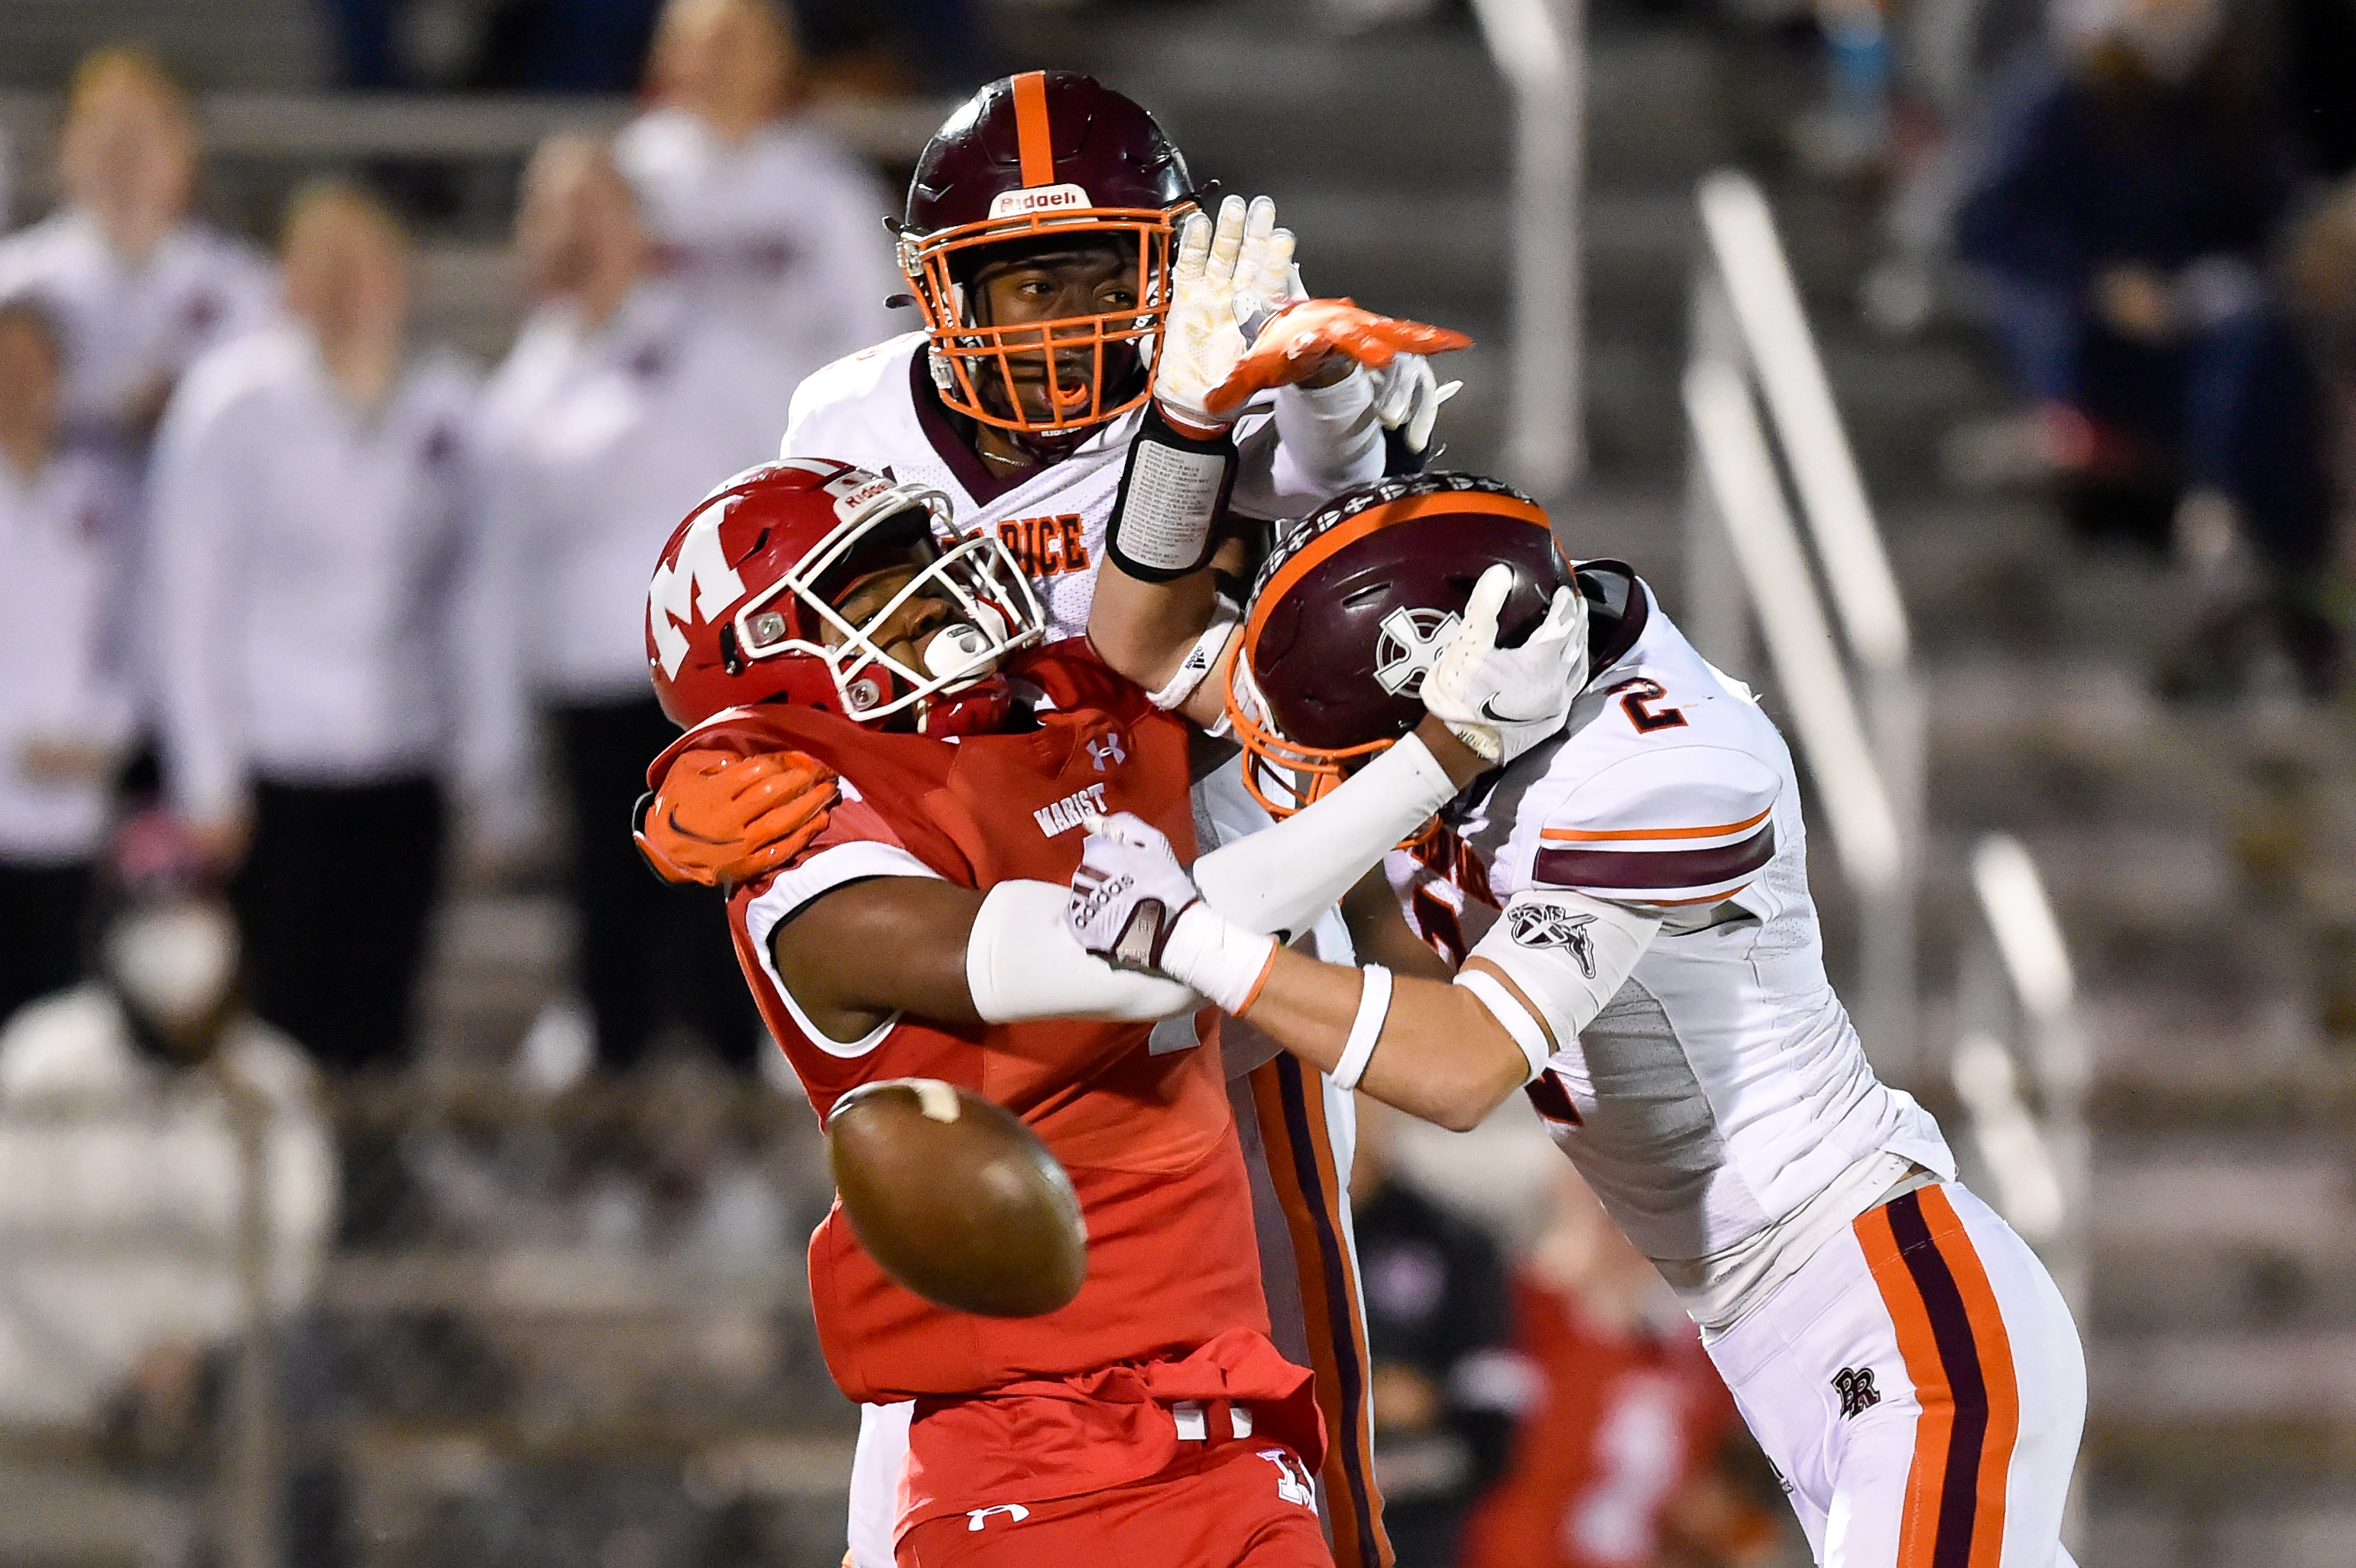 Brother Rice's Luke Niksic (2) and Sean Kinard (12) stop Marist's Ryan Sims (4) from catching a pass.